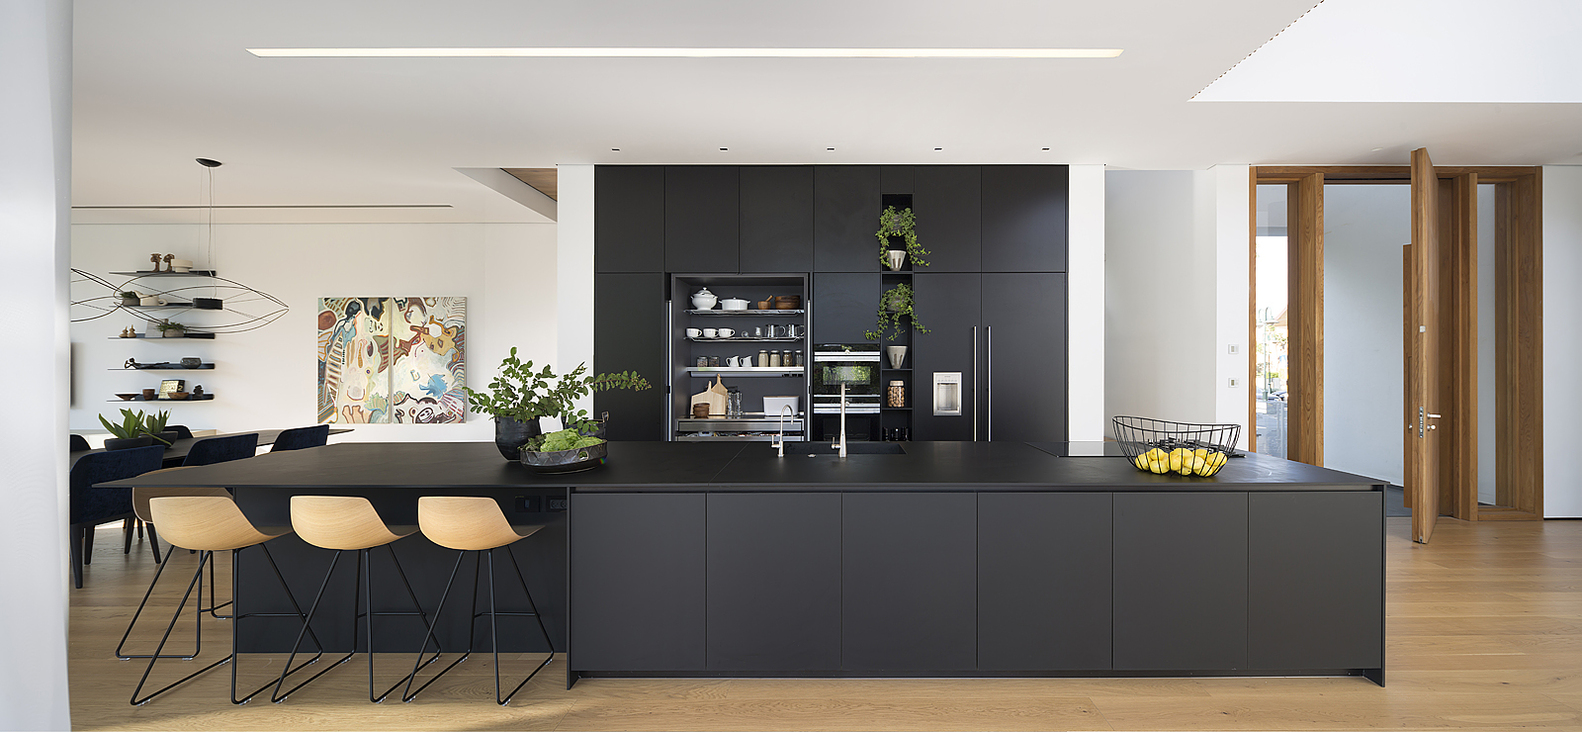 Modern Kitchen with Black Cabinets and Black Countertop